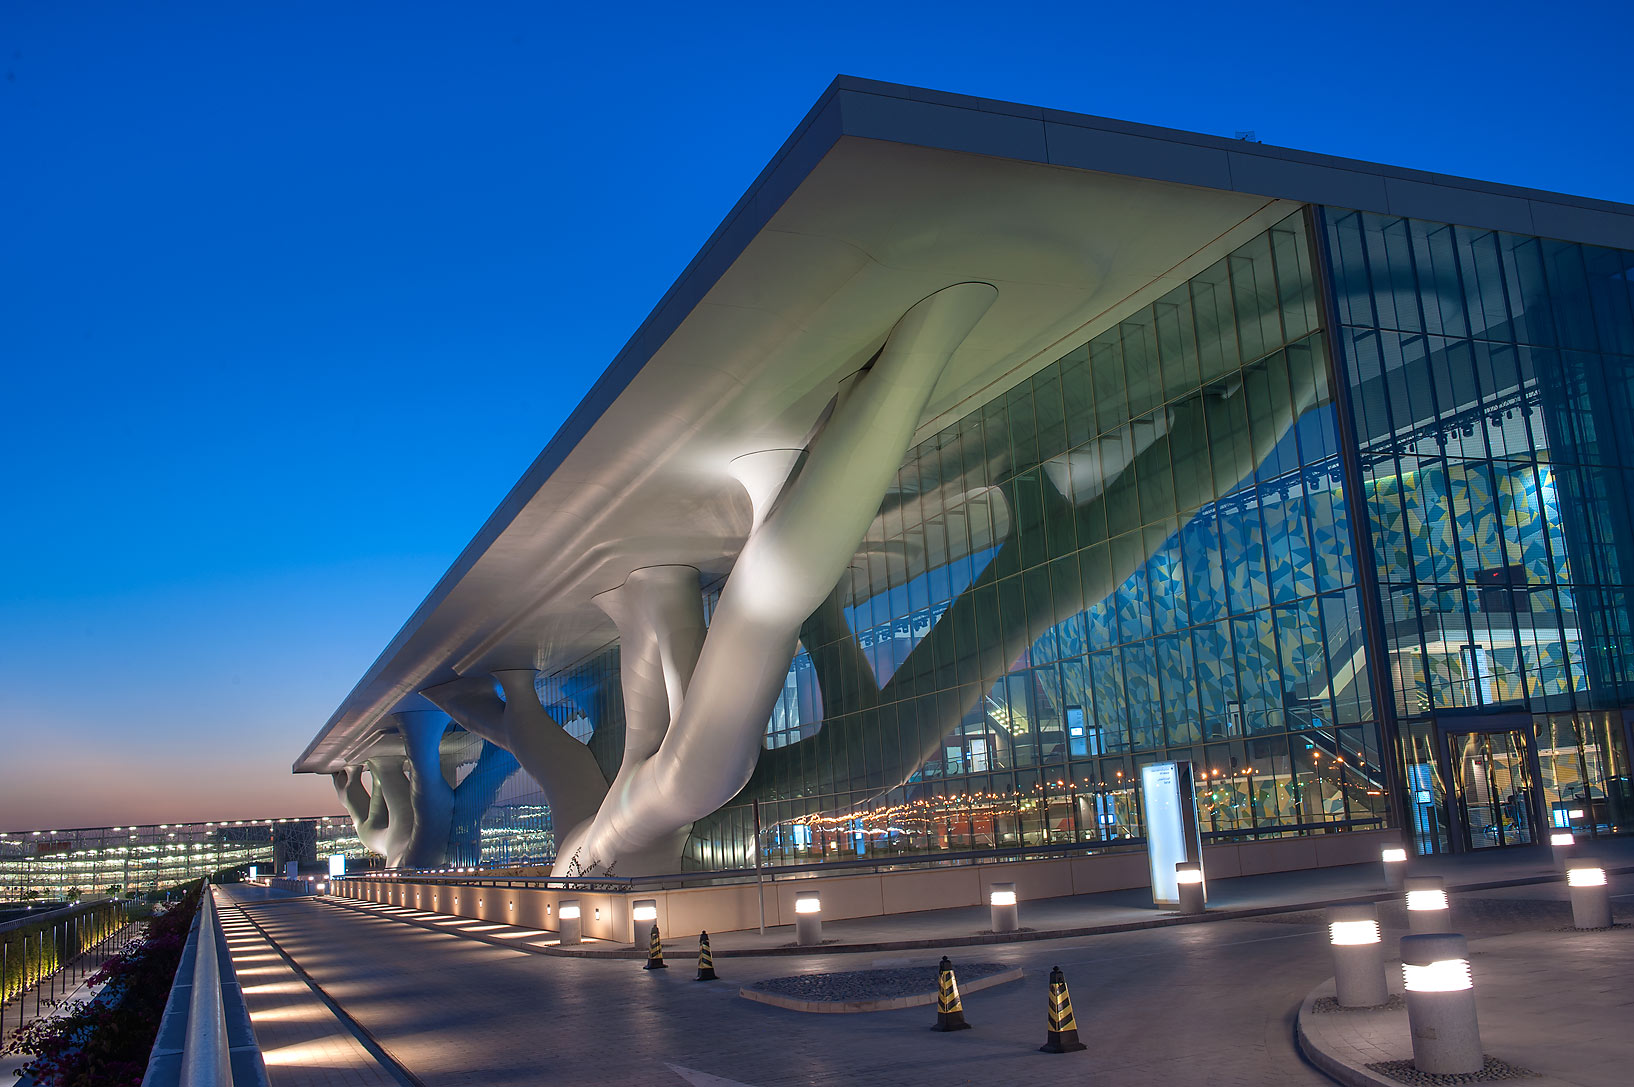 Entrance of National Convention Centre (QNCC) at dusk. Doha, Qatar